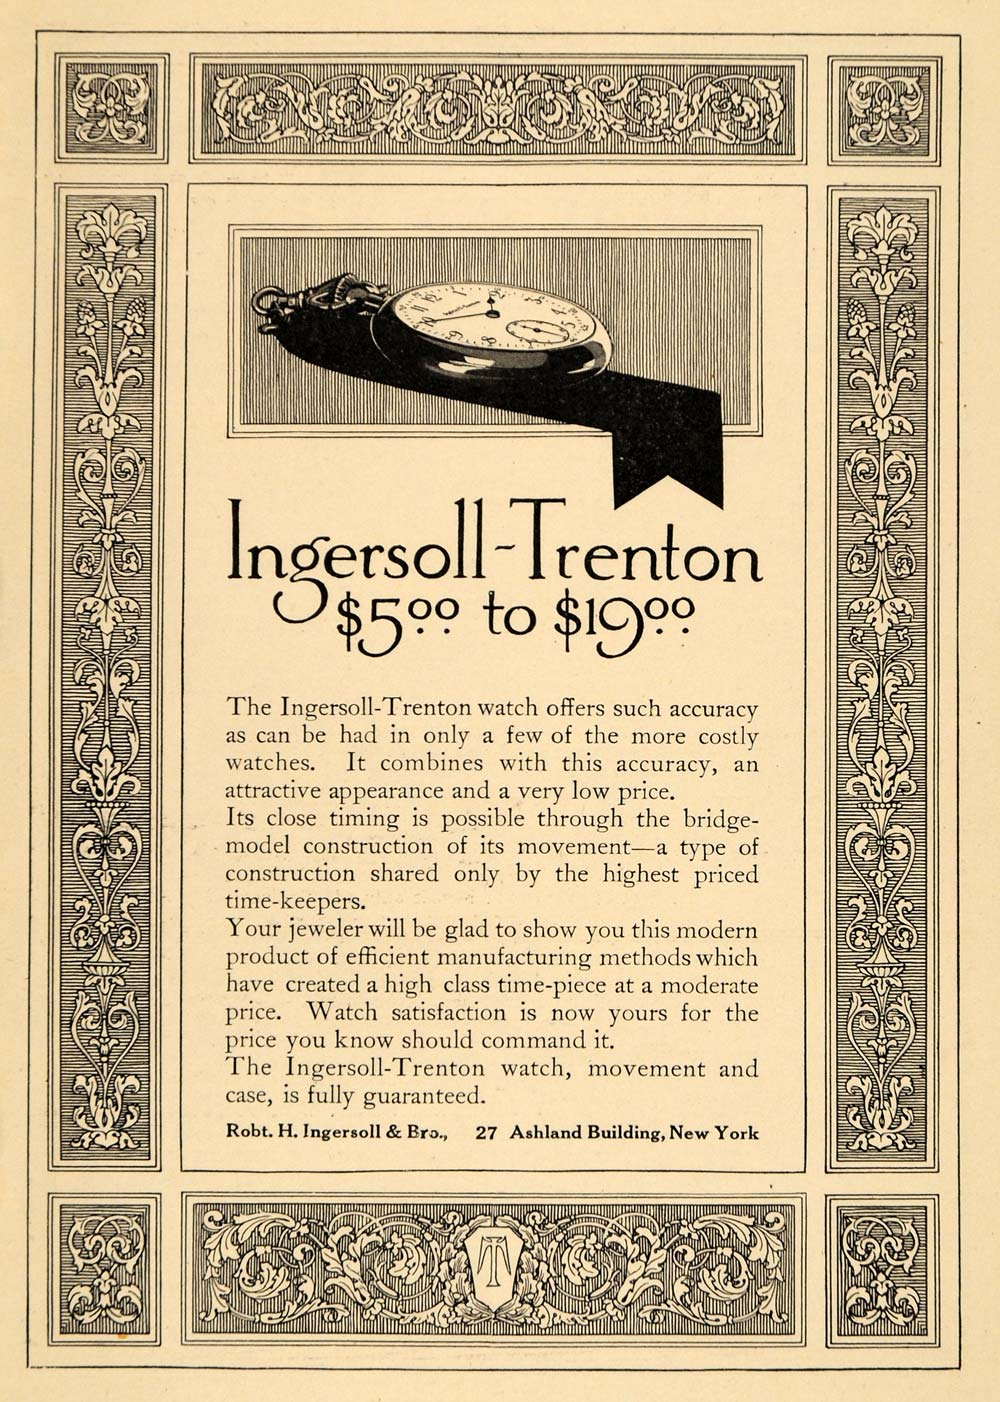 1911 Ad Robert Ingersoll Trenton Pocket Watch Jewelry - ORIGINAL ADVERTISING EM1